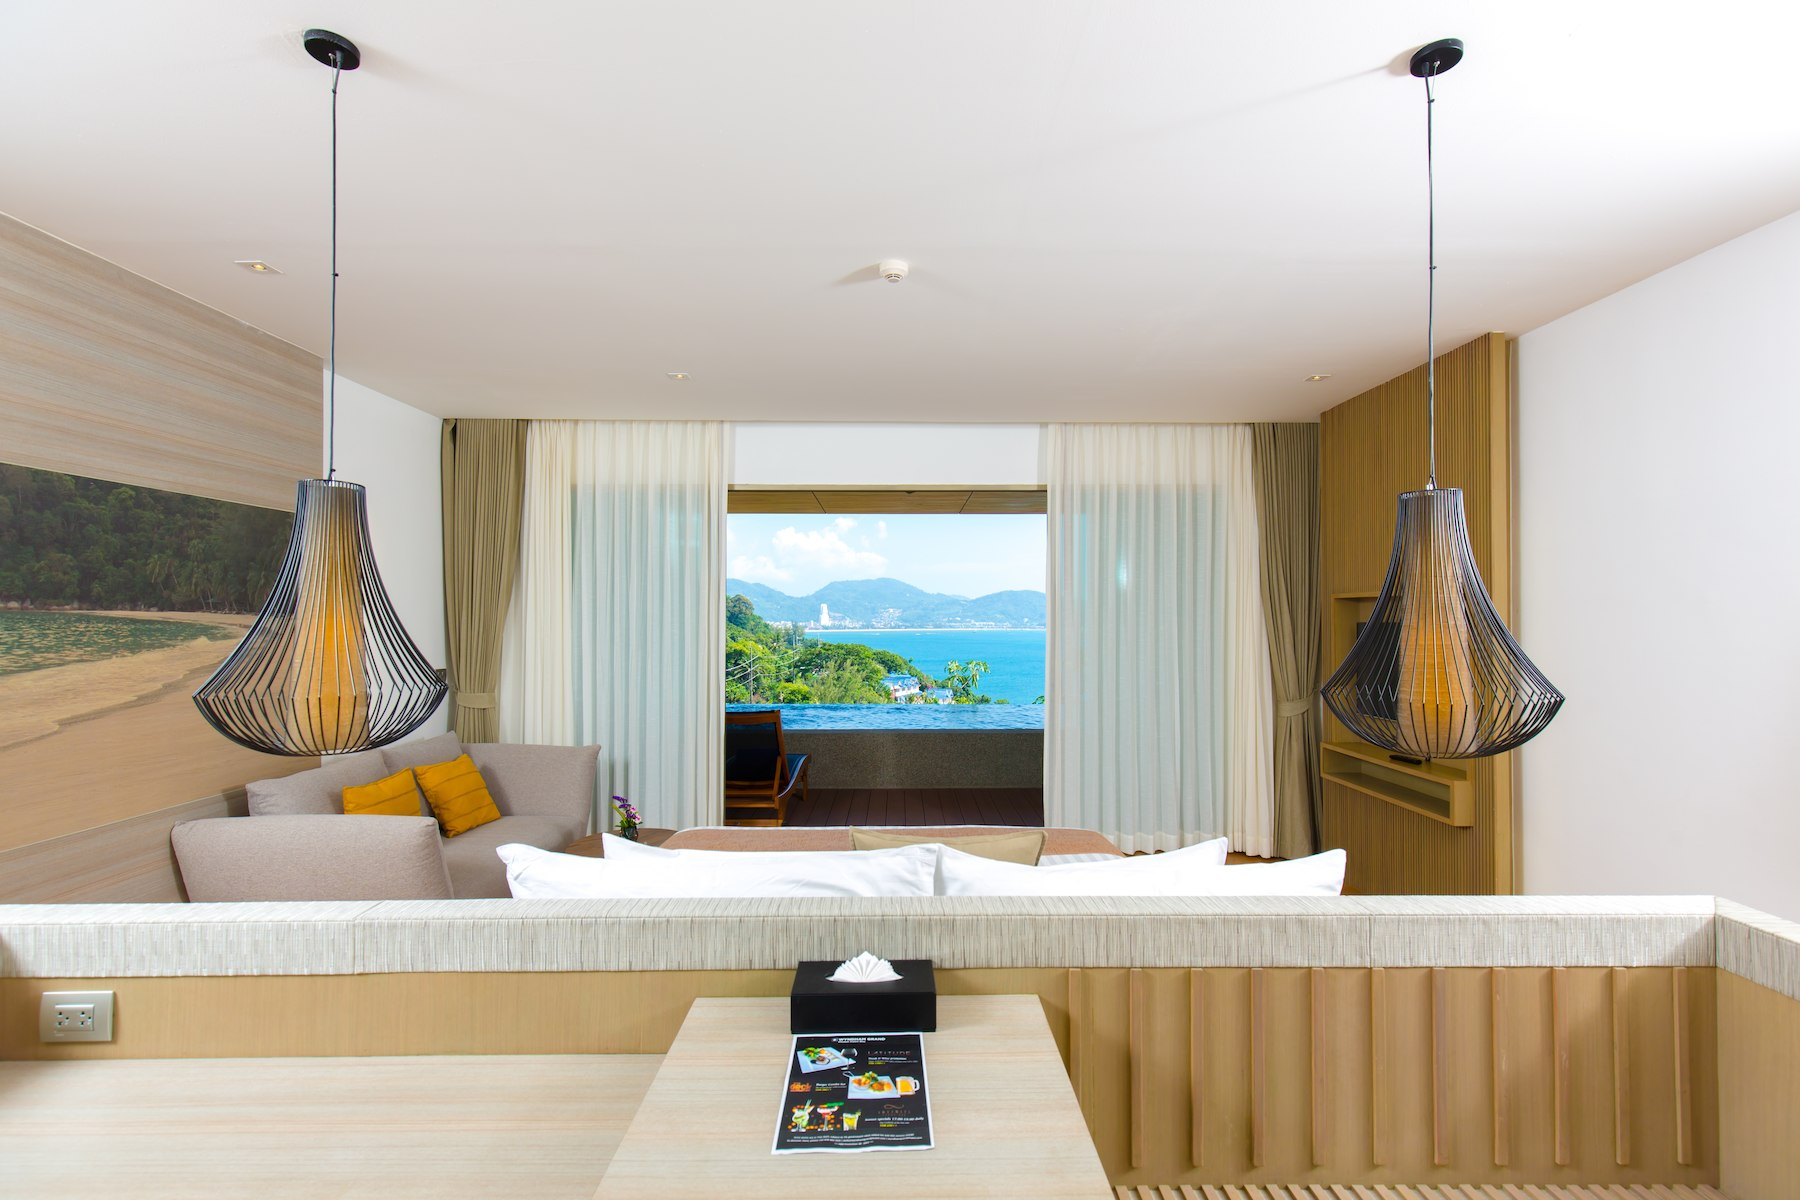 Guestroom image with stunning ocean views